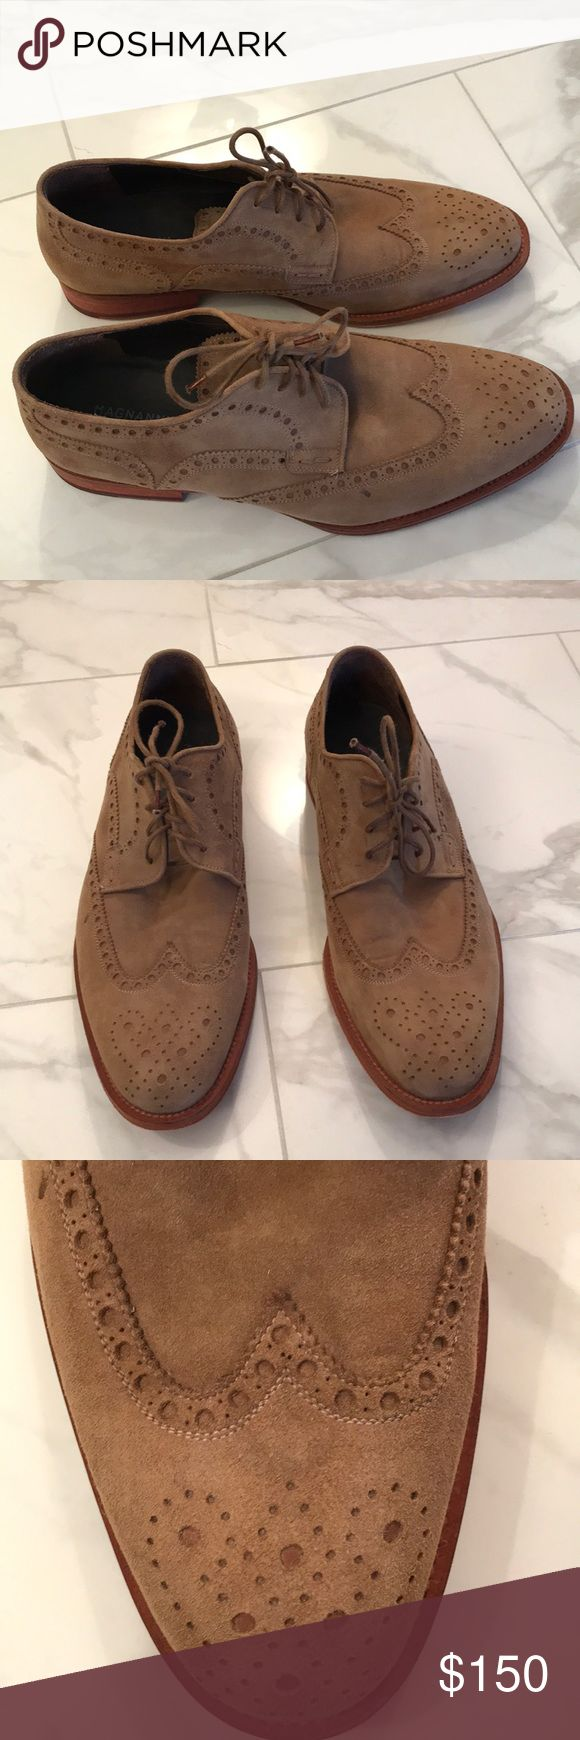 Magnanni Men's Wing-tip Shoes Suede leather upper and leather sole. Gently use...